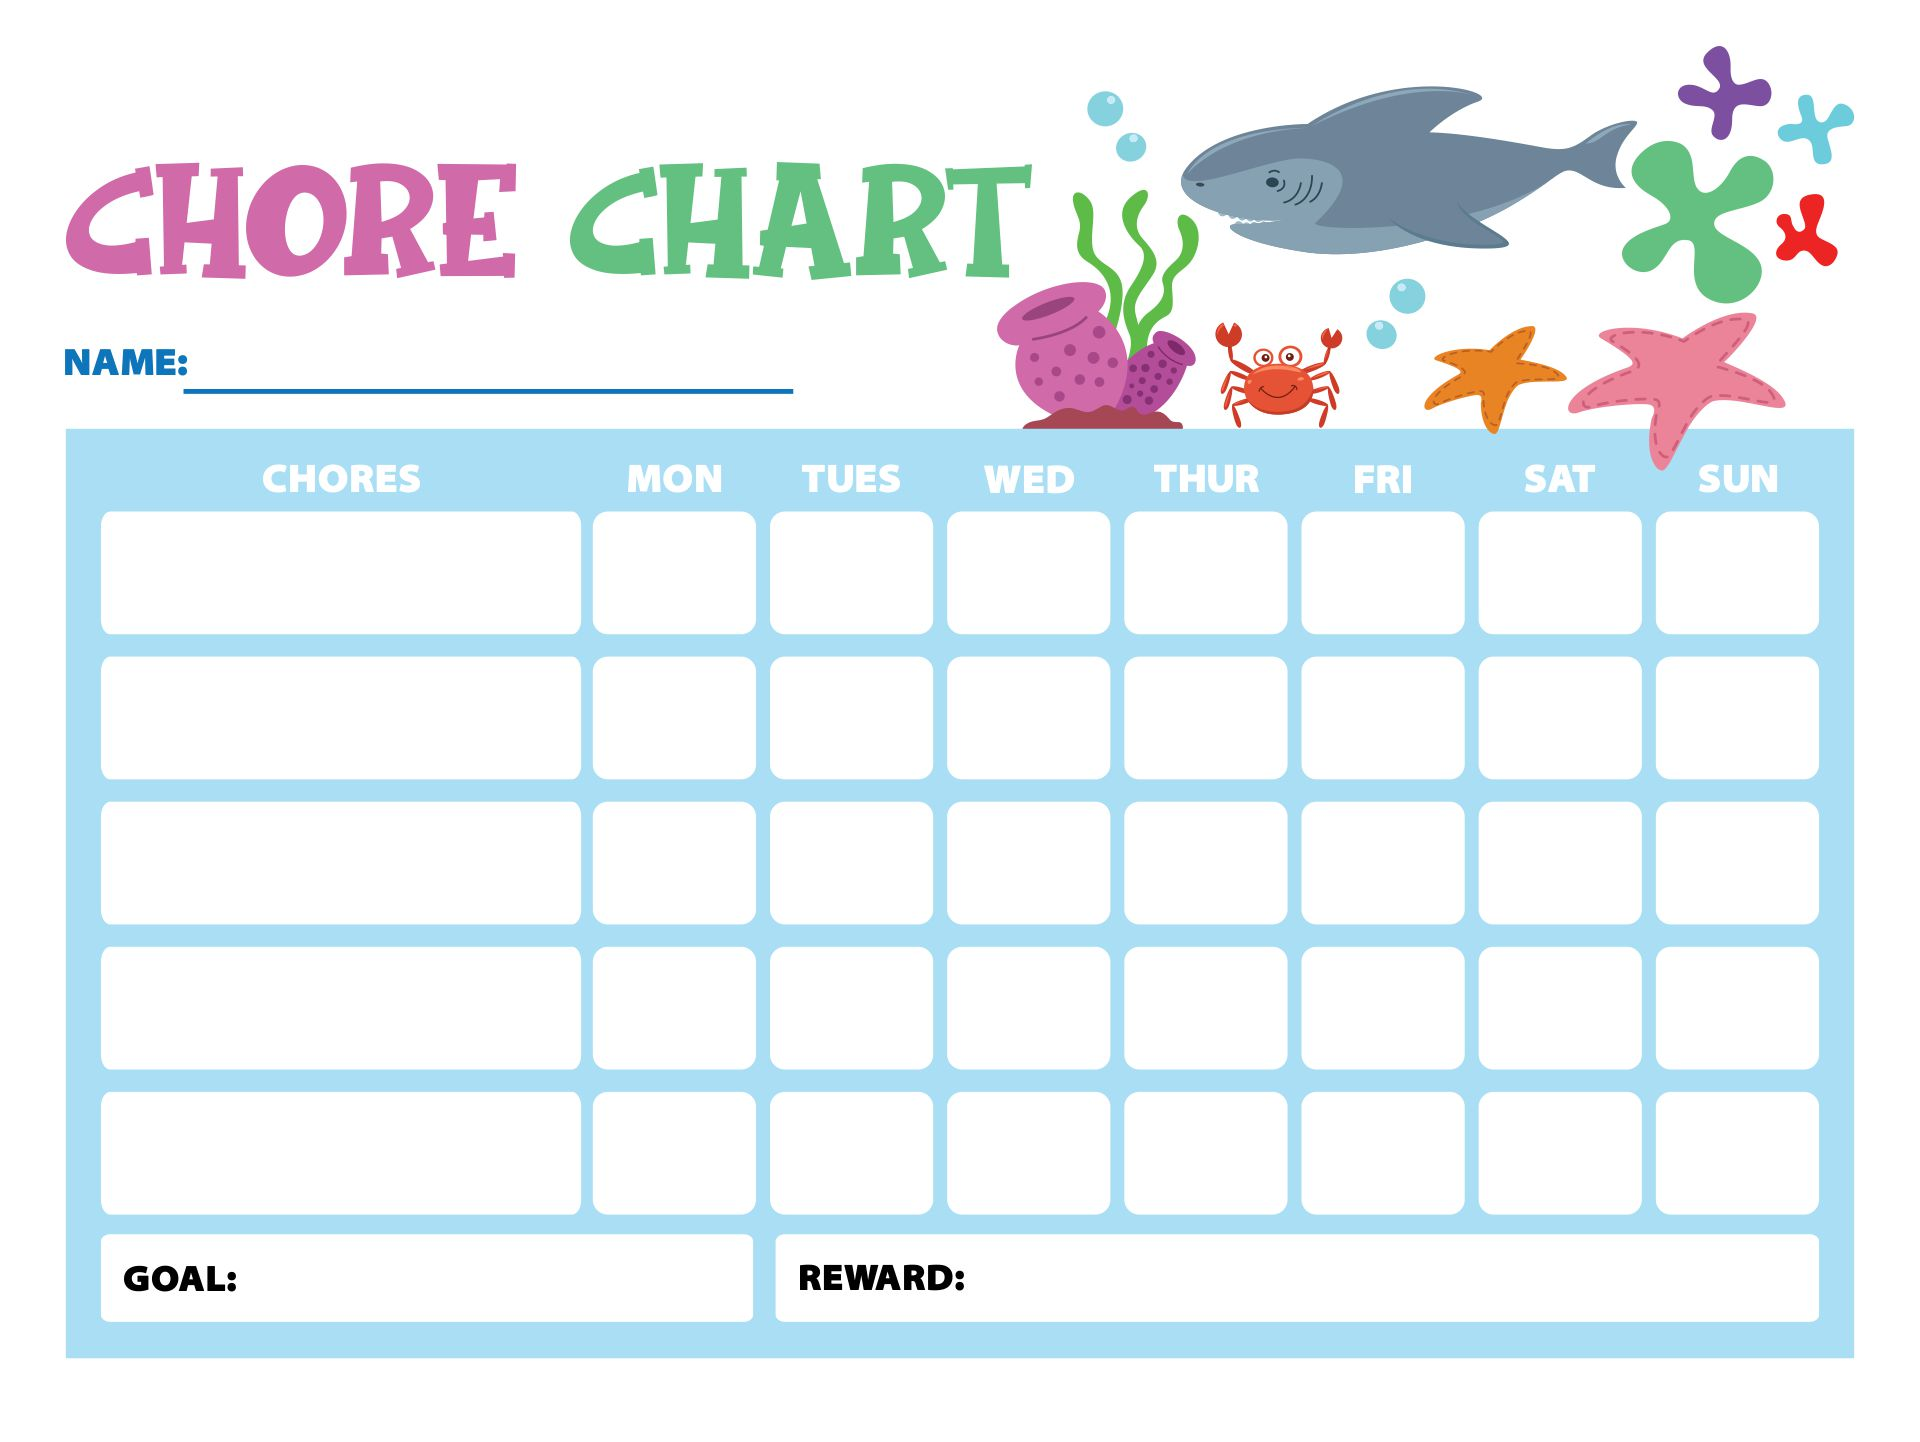 chore list template for kids - 9 best images of free printable shark chore chart free